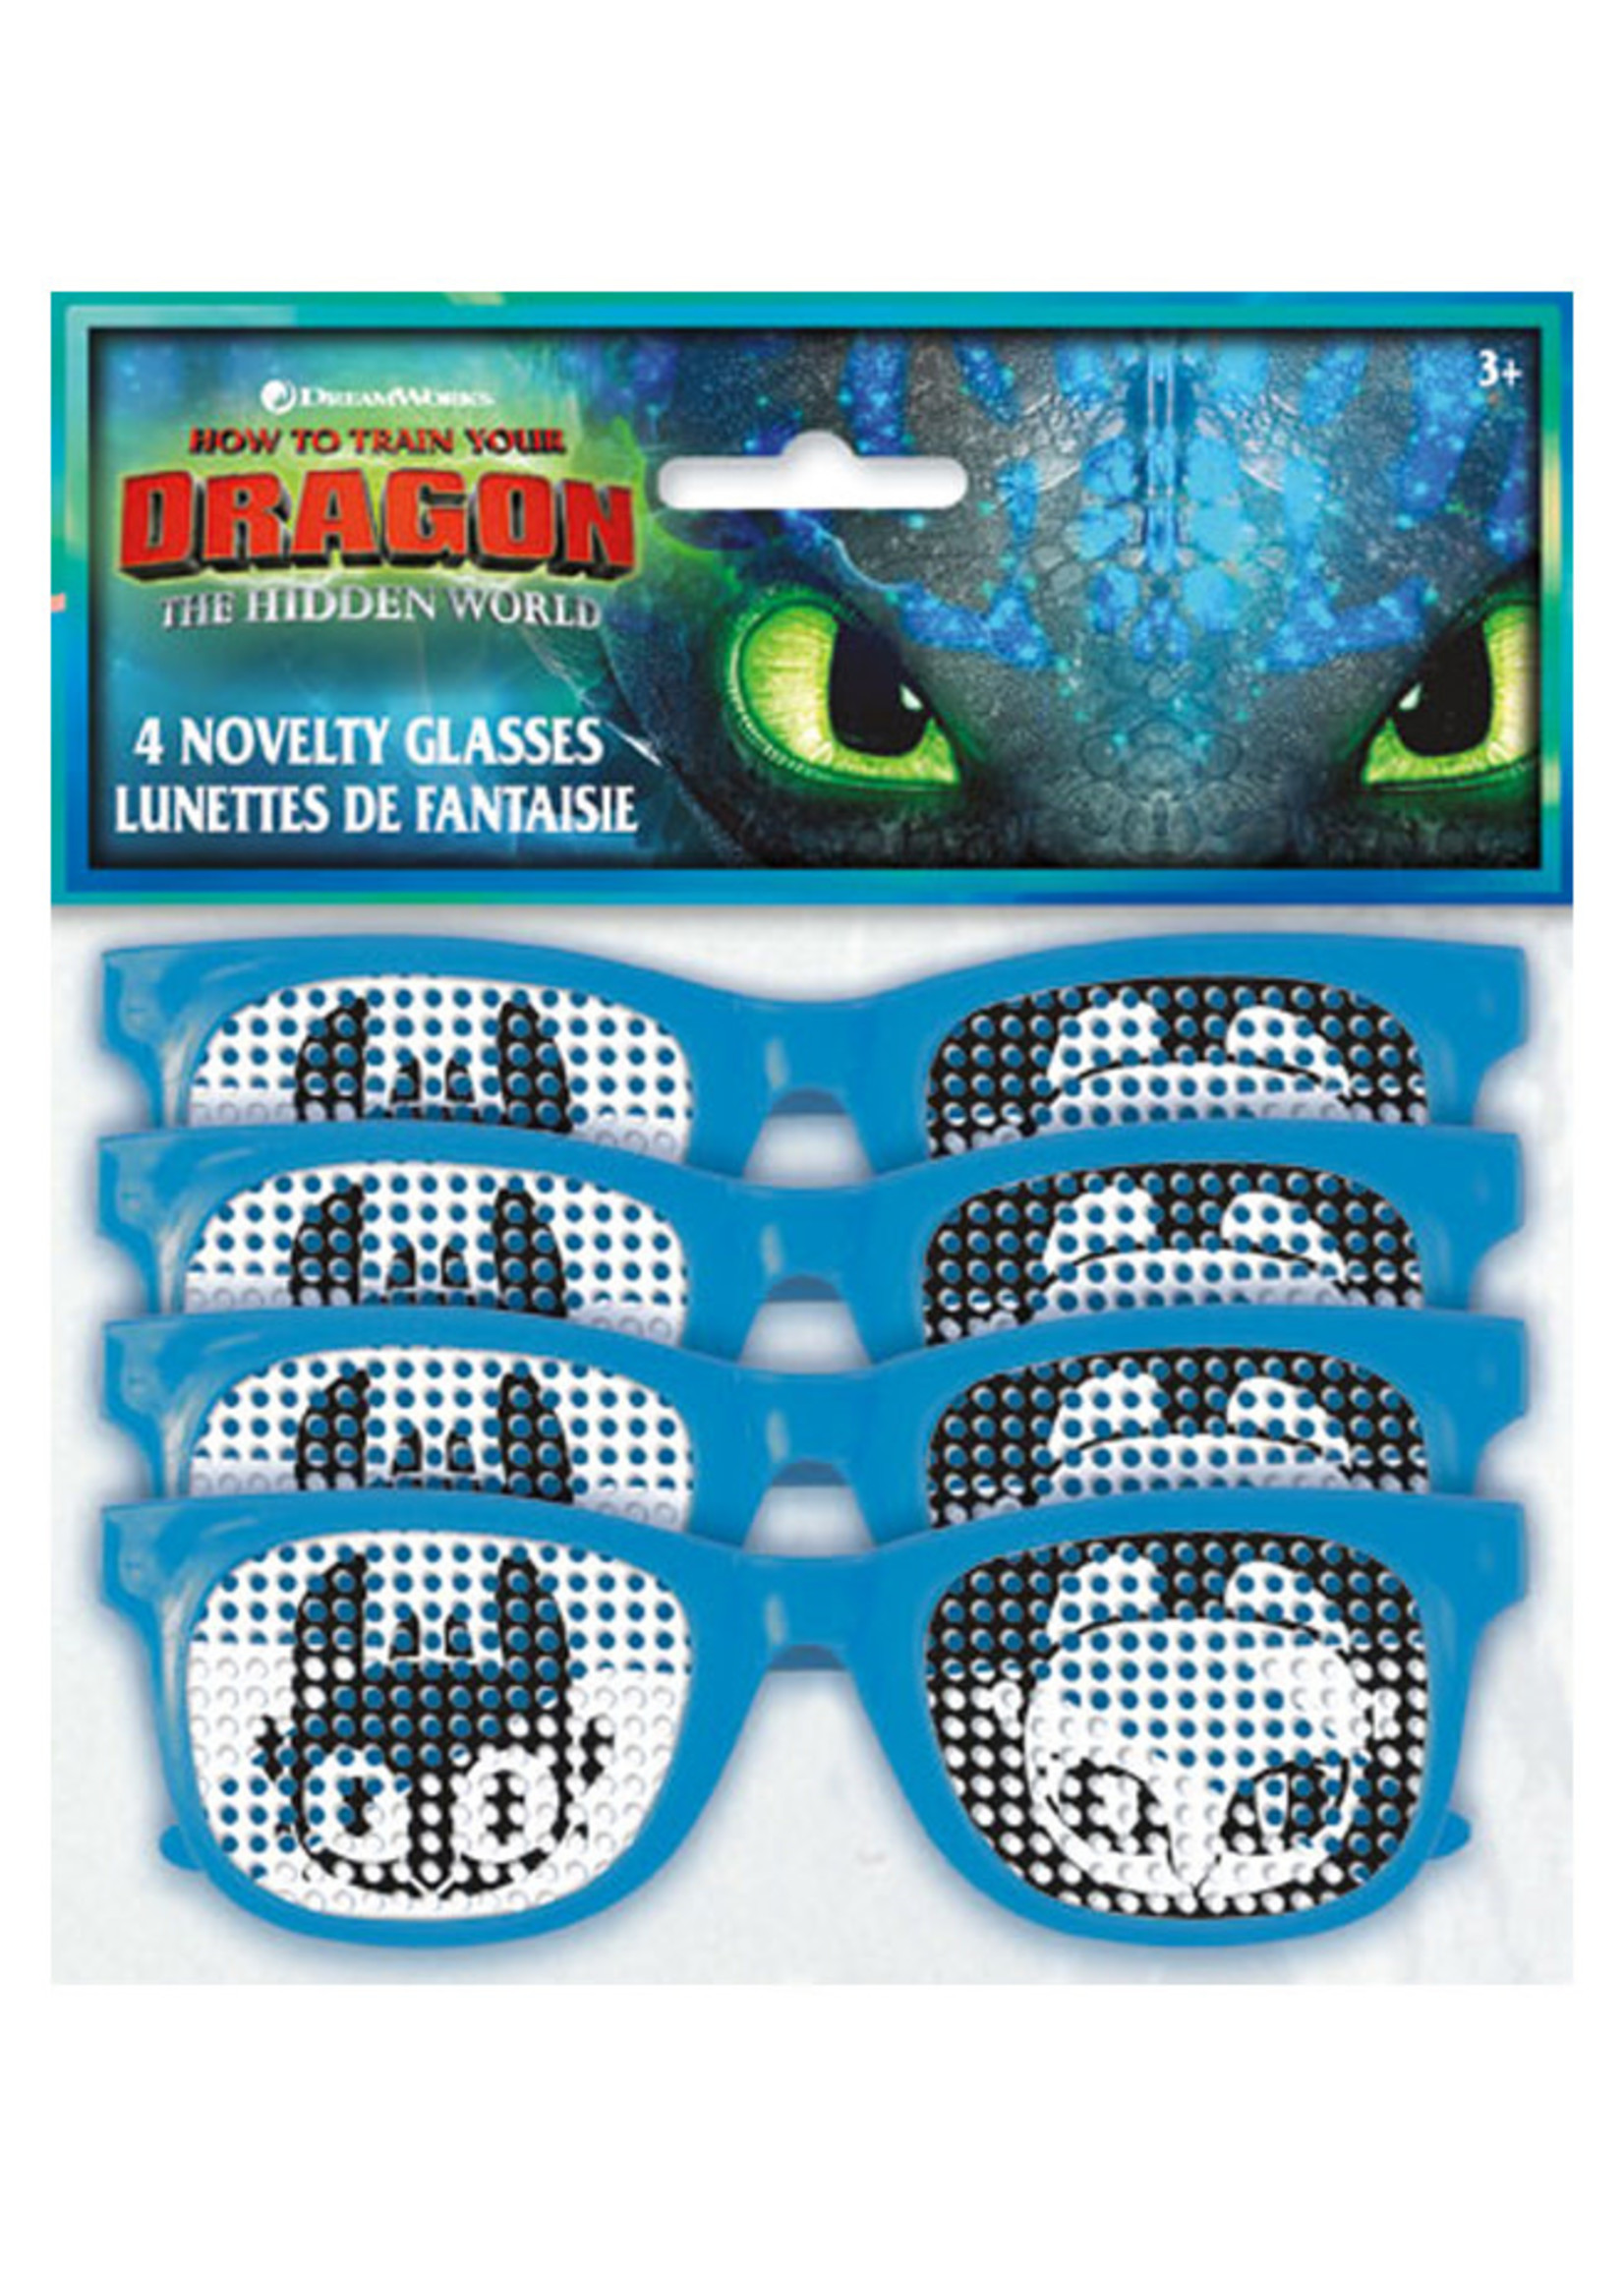 UNIQUE INDUSTRIES INC How to Train Your Dragon Pindot Novelty Glasses - 4ct